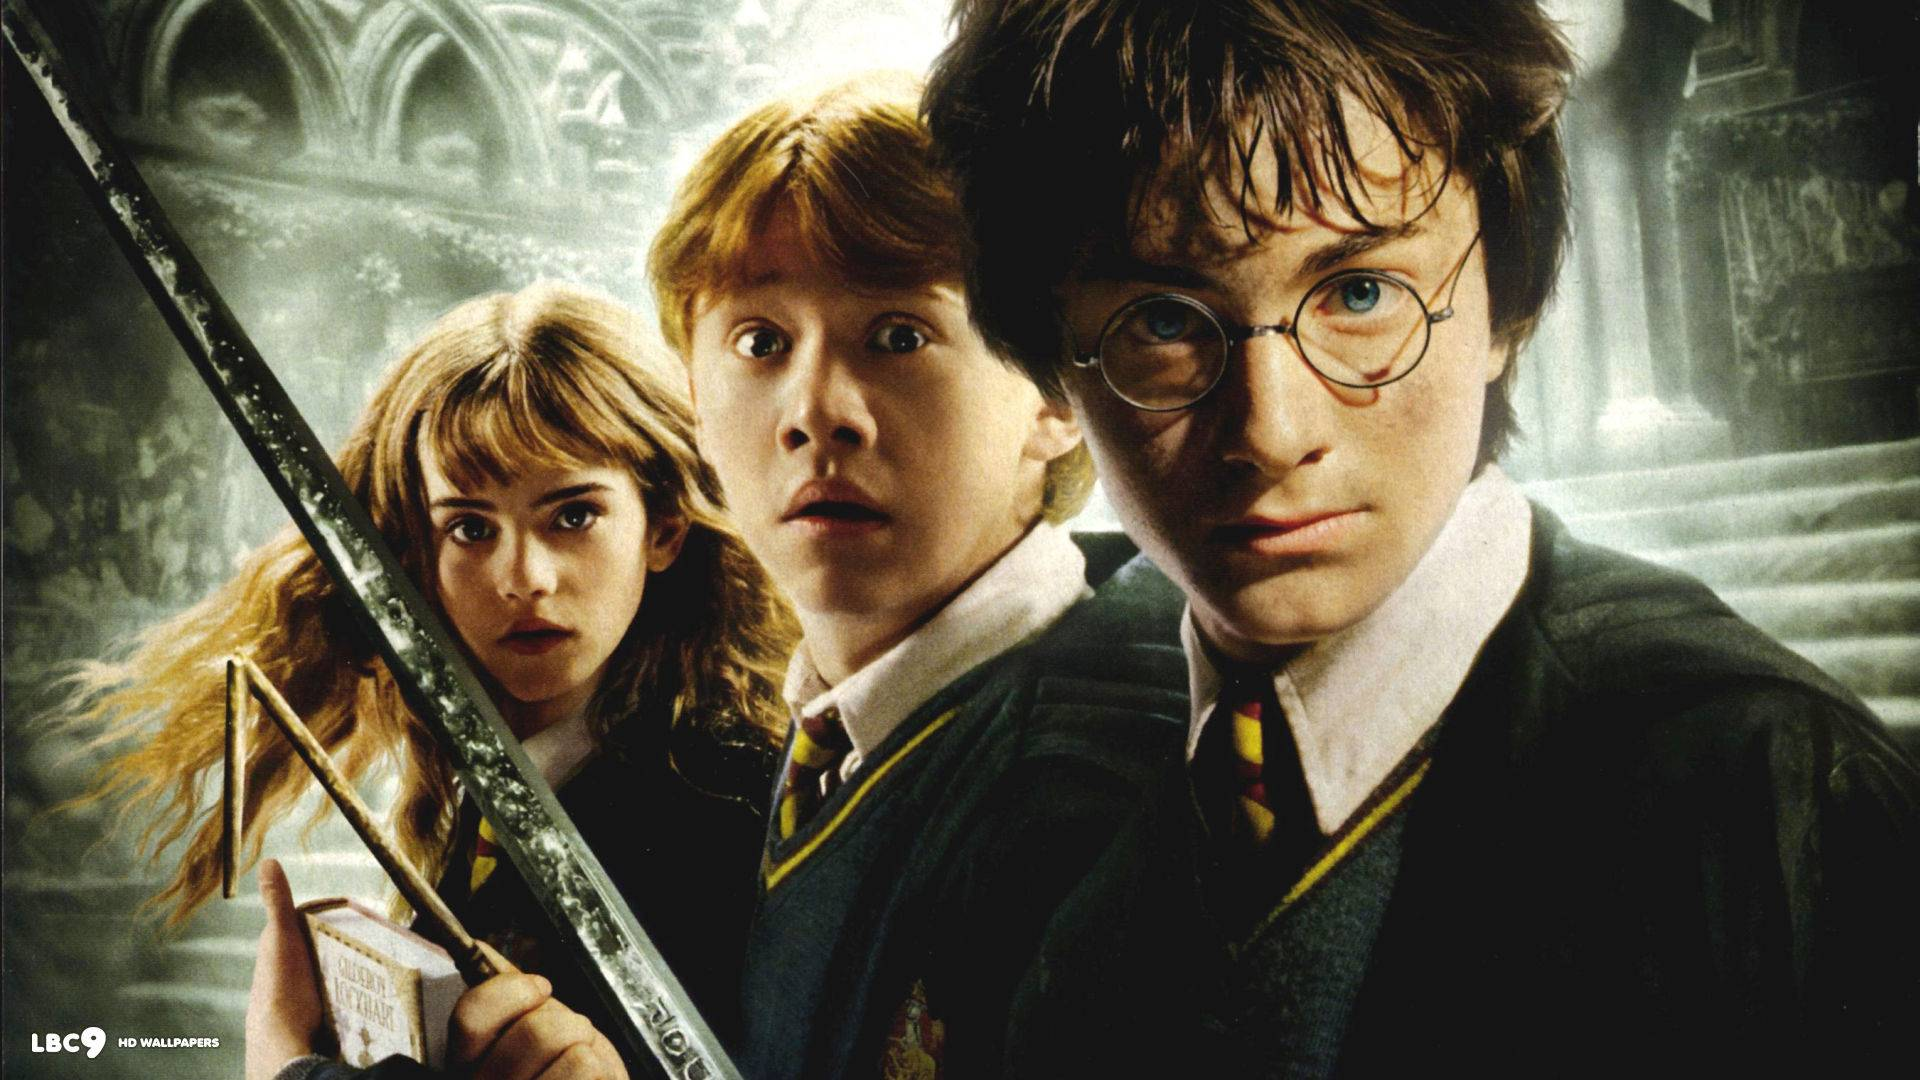 harry potter and the chamber of secrets wallpaperjpg 19201080 1920x1080